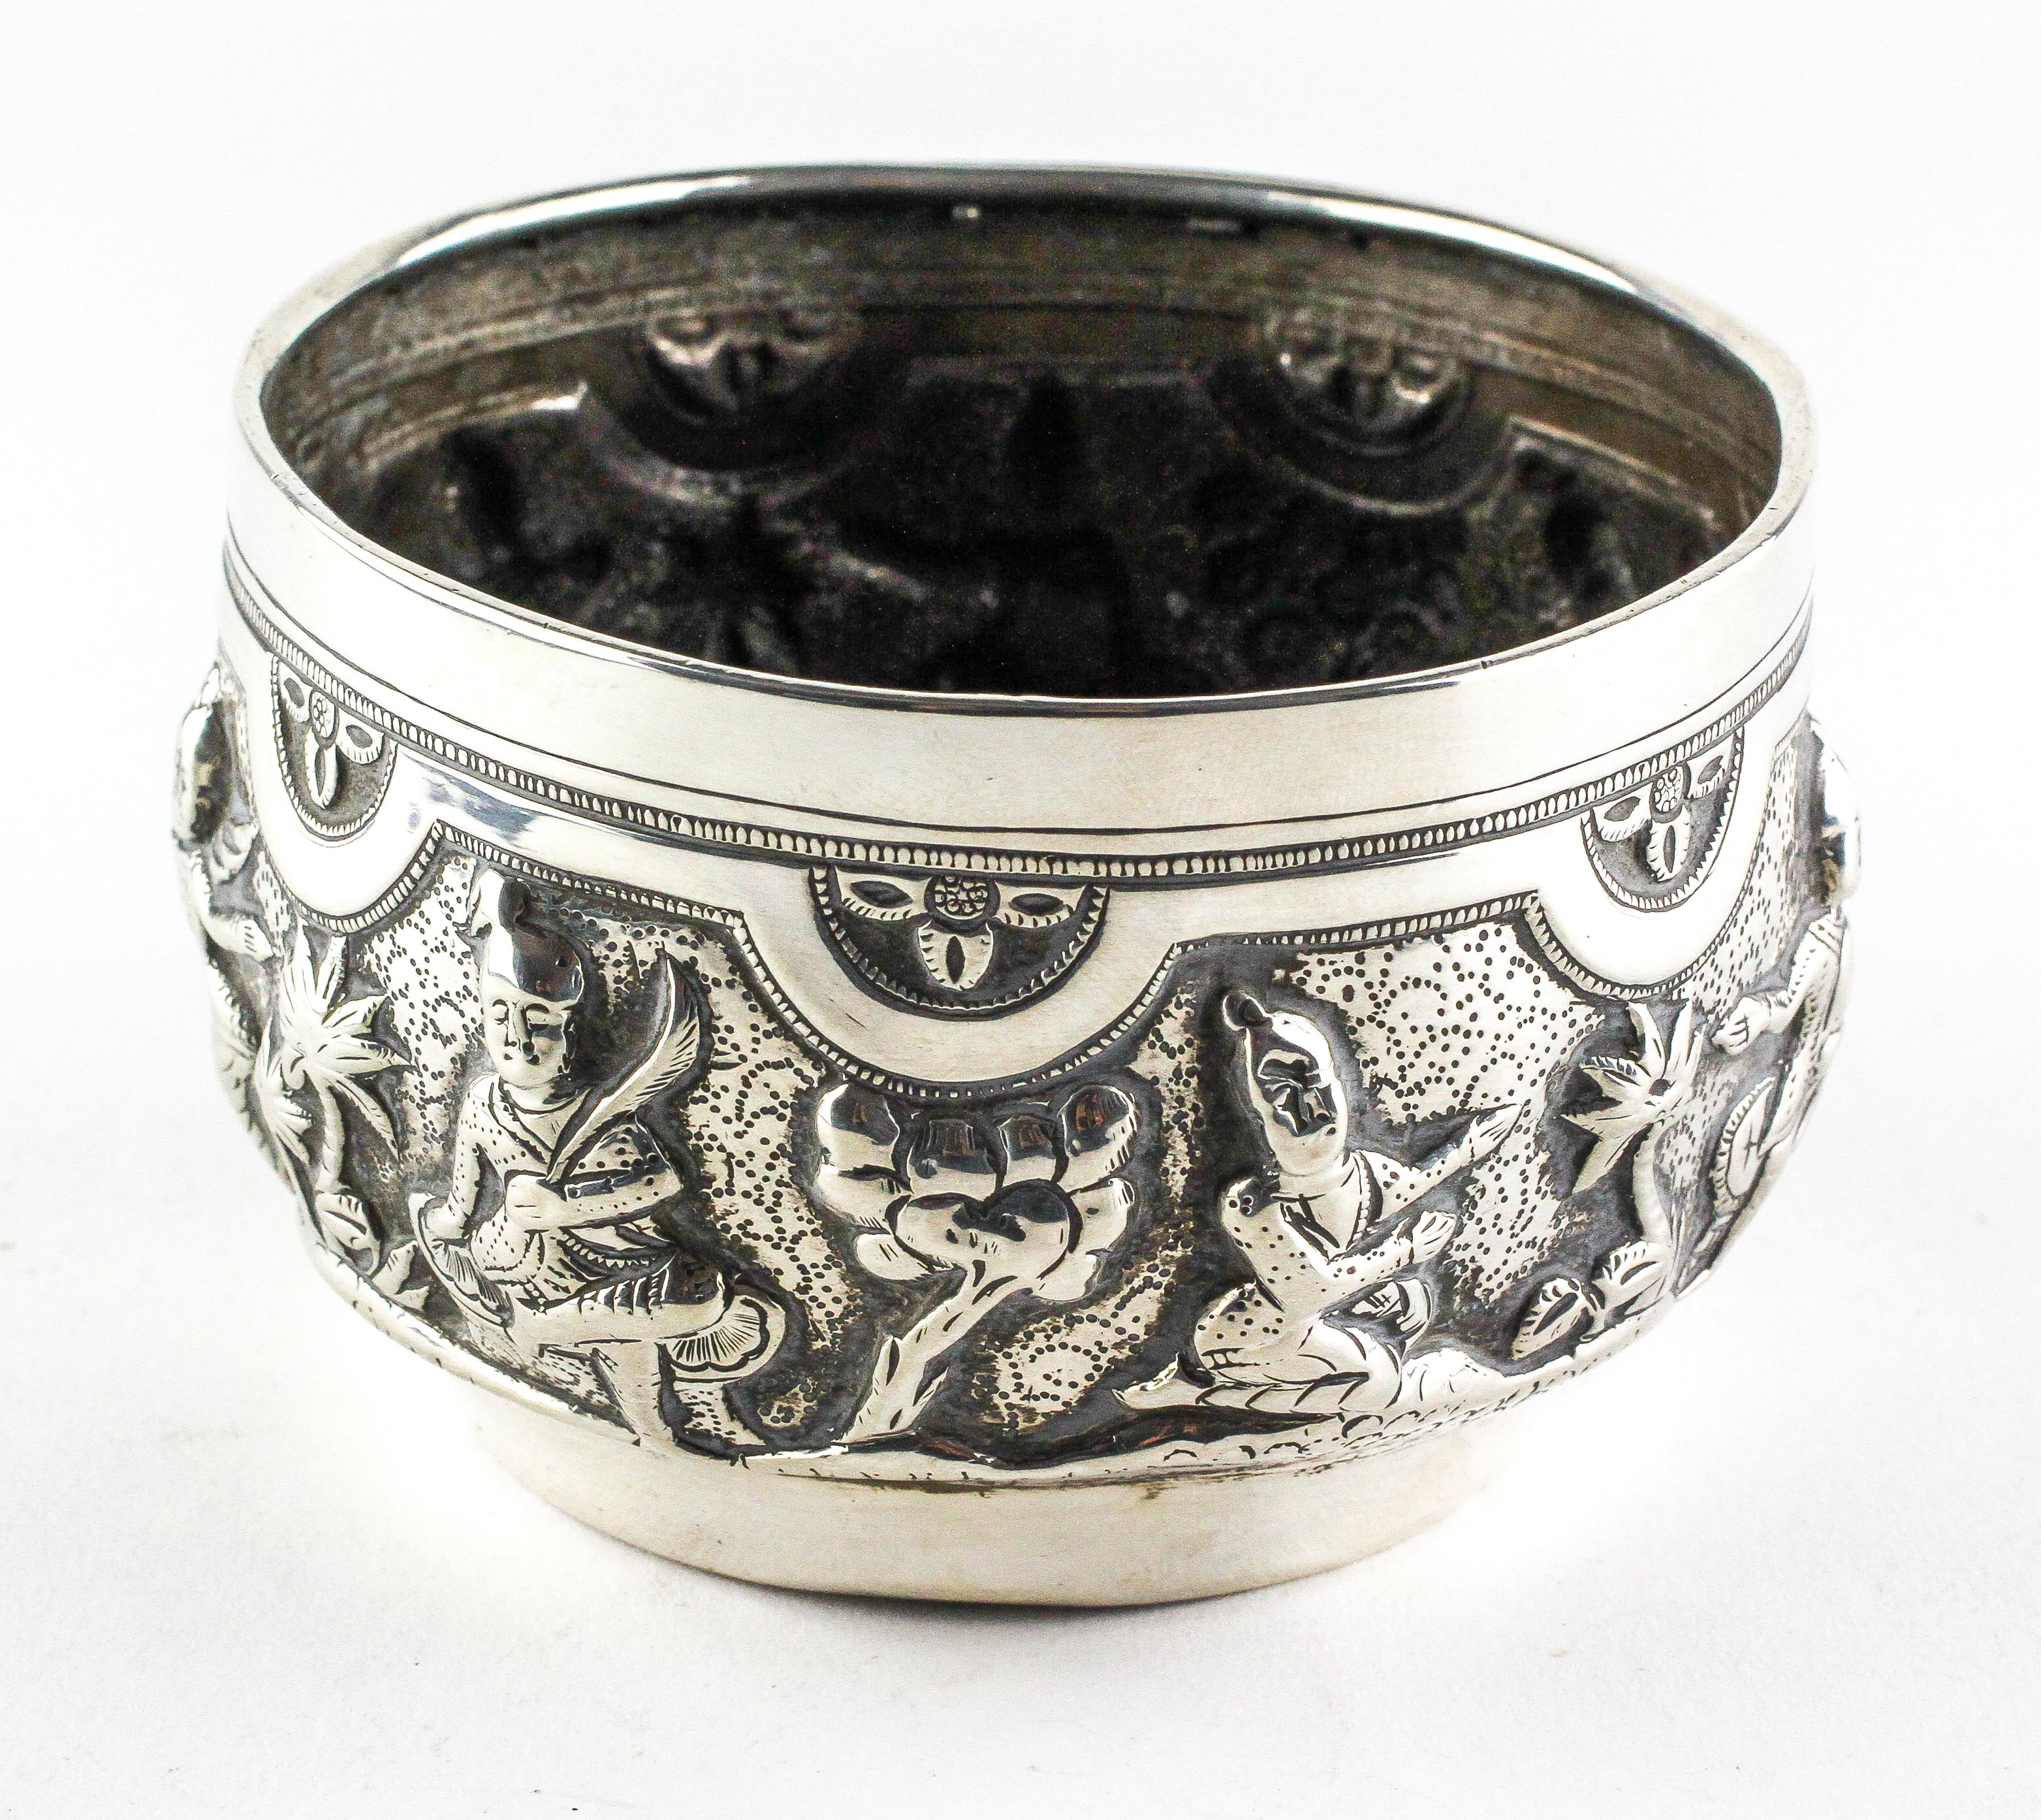 An Indian white metal bowl, late 19th or 20th century, embossed with figures and plants, - Image 2 of 2